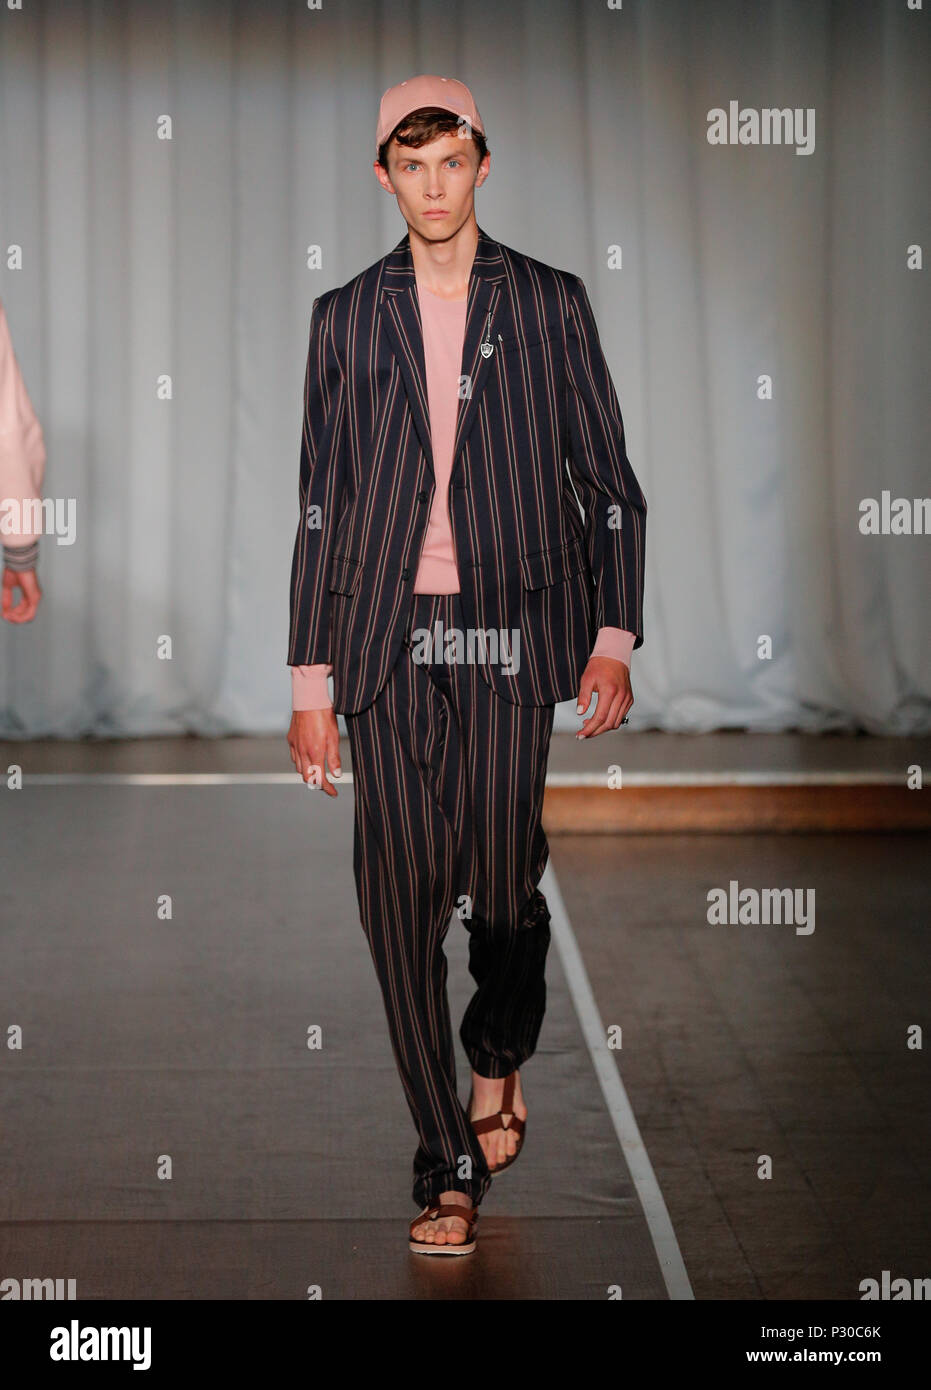 London Fashion Week Mens British Designer Ben Sherman Presenting Summer Spring 2019 Fashion Collection At British Fashion Council Show Space Stock Photo Alamy